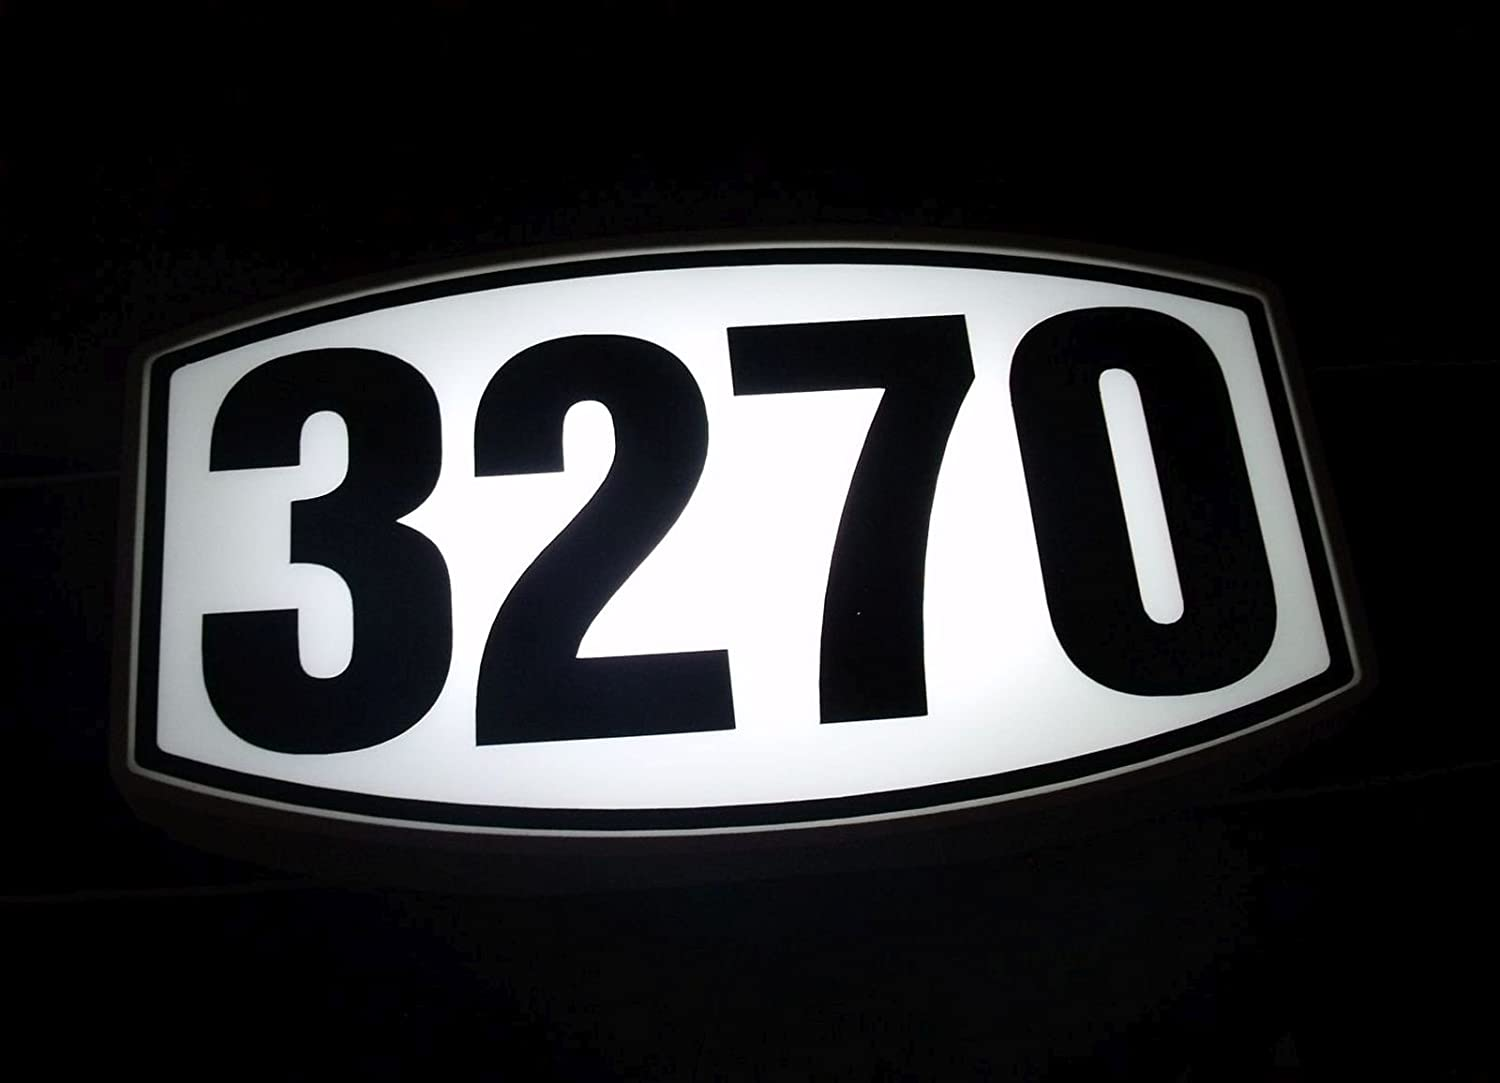 CUSTOM BACK-LIT LED ADDRESS SIGN LIGHTED HOUSE NUMBER ILLUMINATED ADDRESS SIGN LED LIGHTED ADDRESS PLAQUE